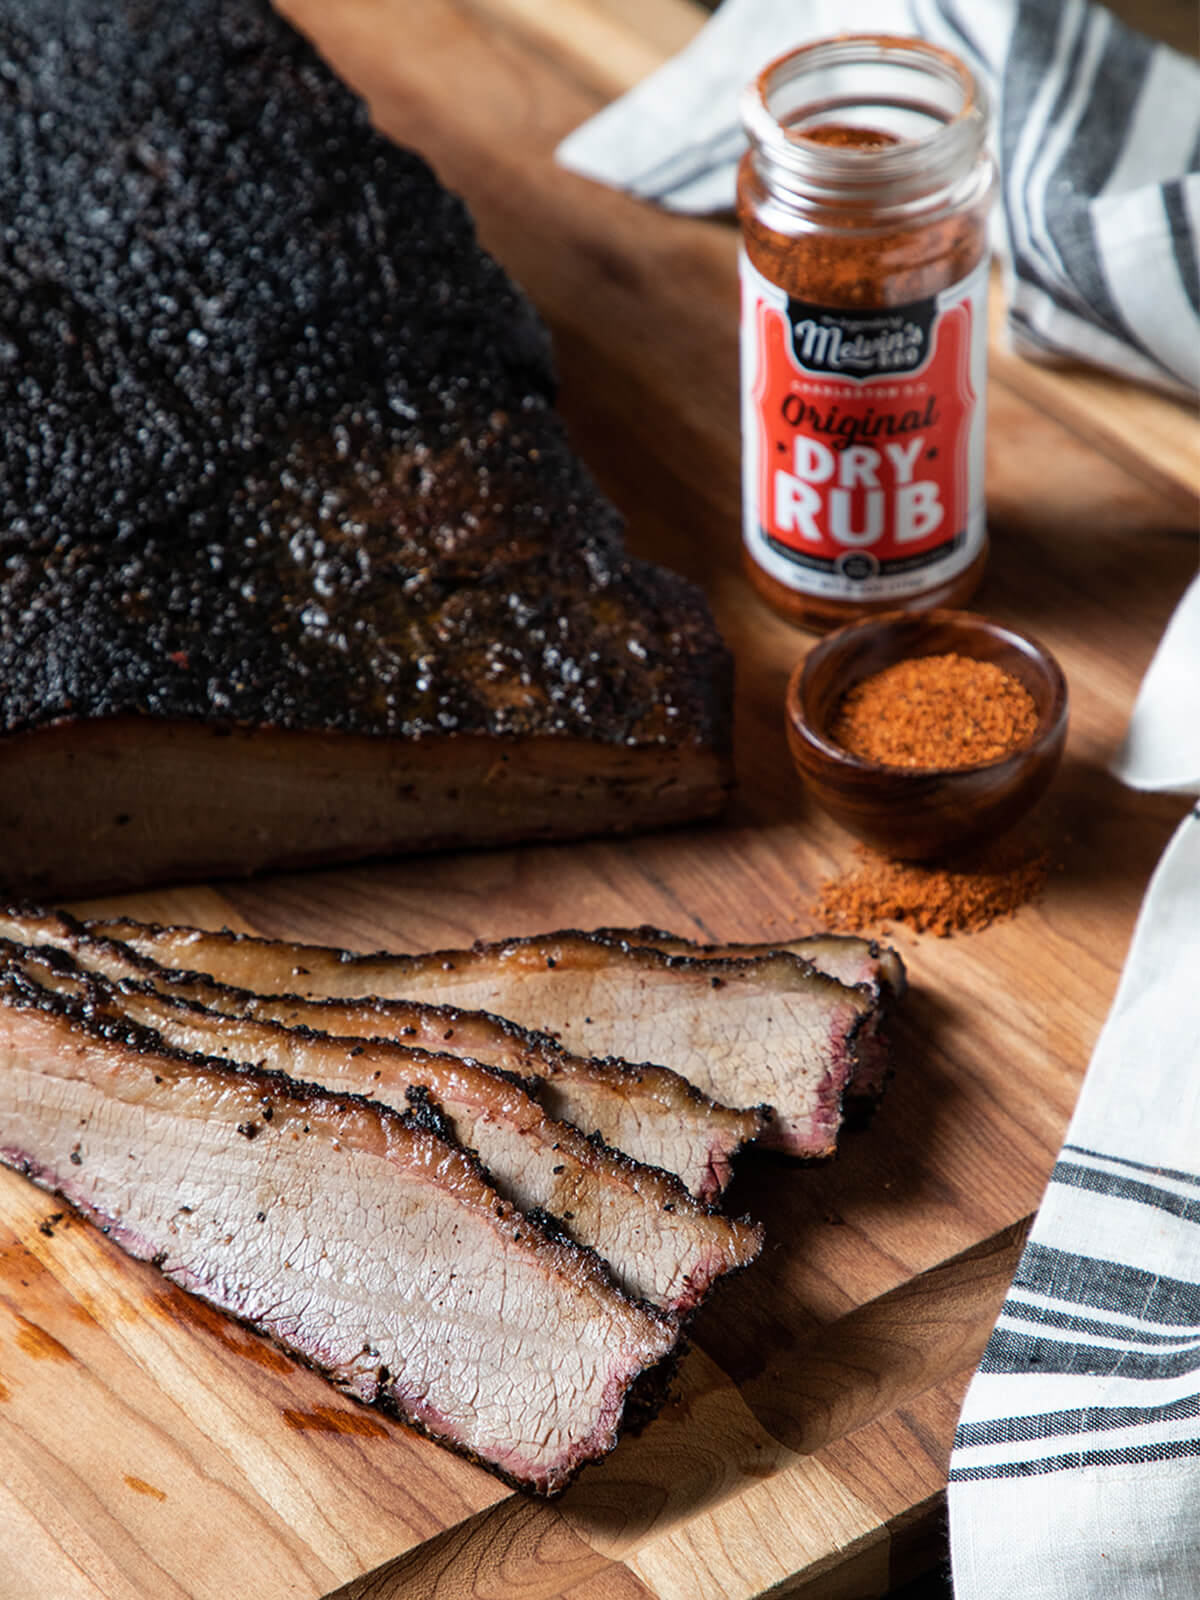 Dry Rub - Smoked Brisket